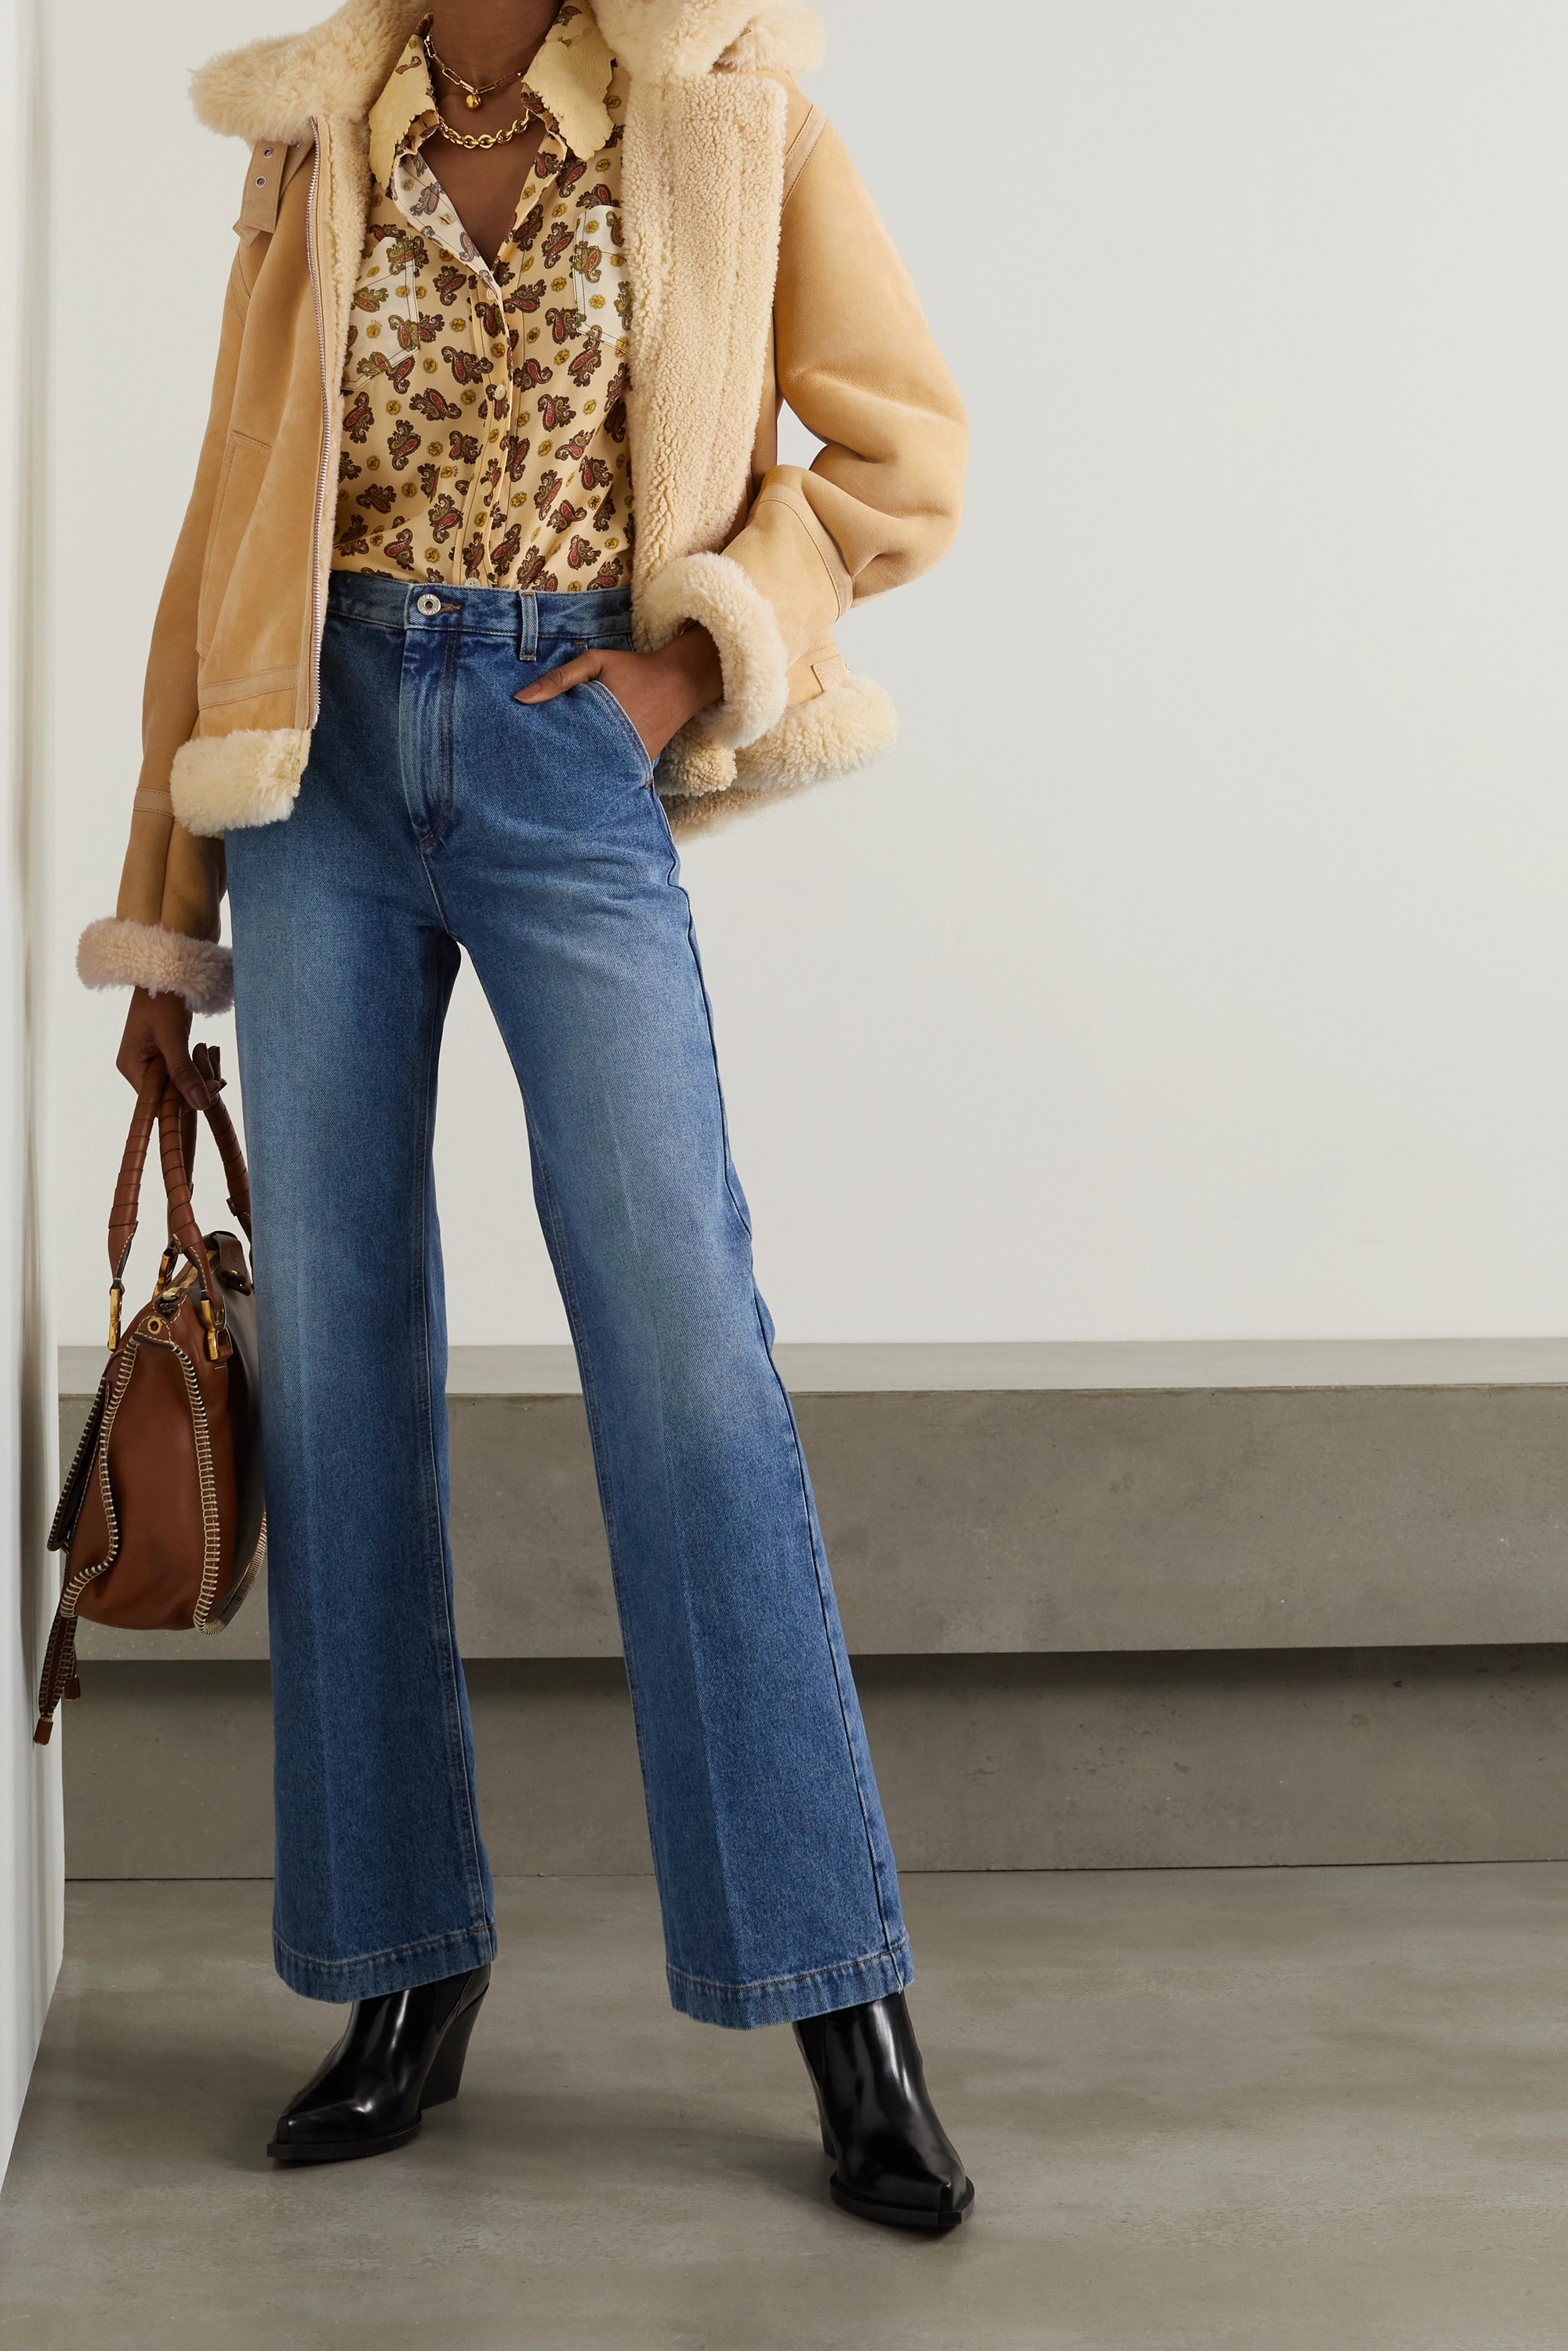 Chloé Aviator hooded suede-trimmed shearling jacket